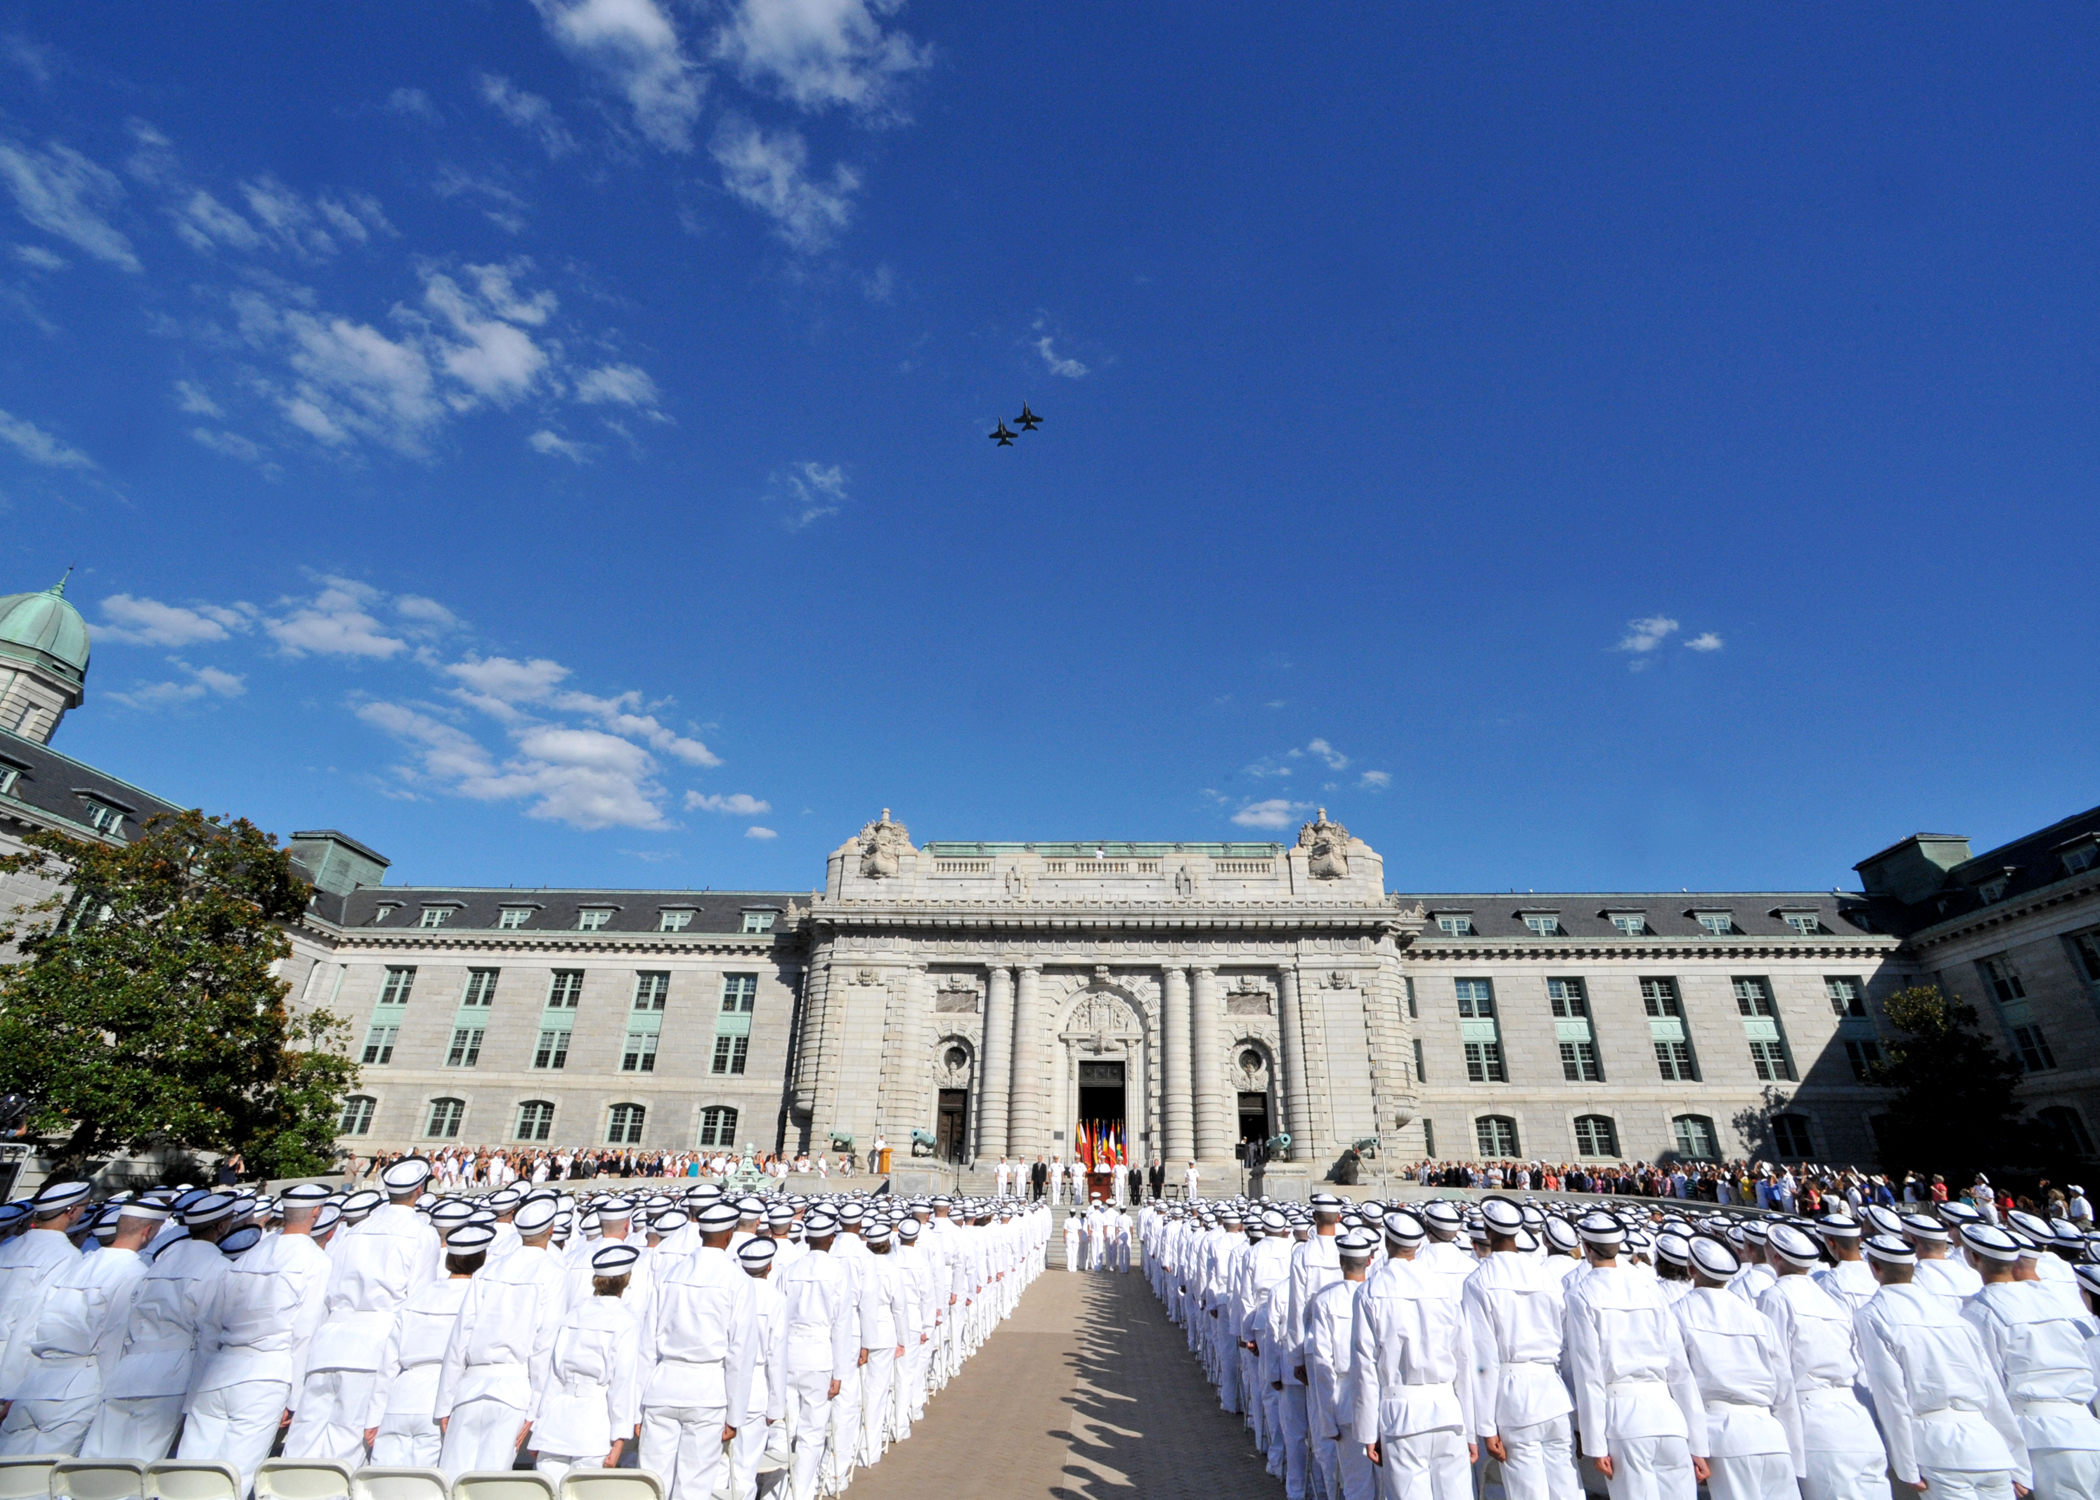 Sex Assault Reports at Navy, Army Academies